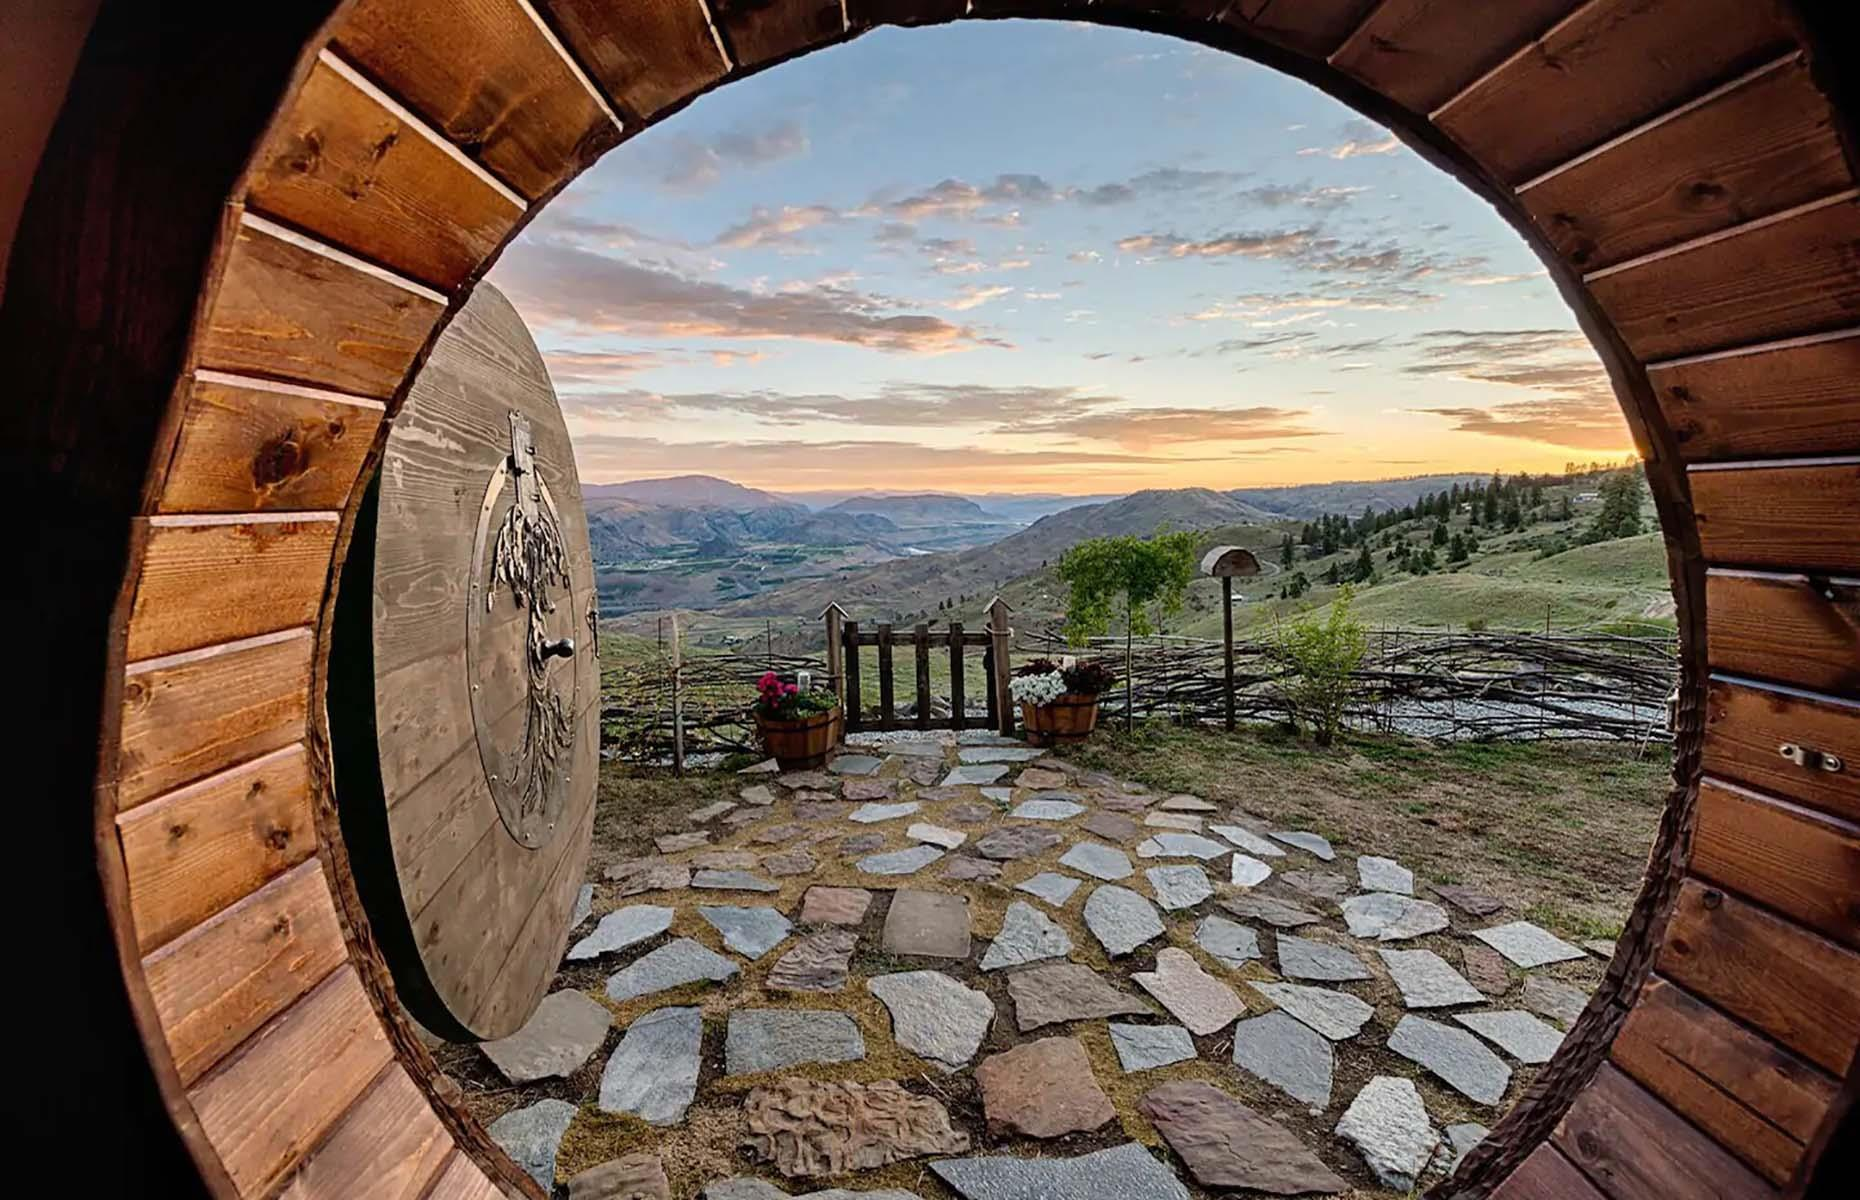 Slide 31 of 31: Nestled into a mountainside in central Washington state, this one-bedroom home has a round doorway that opens up to incredible mountain scenery where the only neighbors are local wildlife like deer, rabbits and grouse. The underground Lord of the Rings-inspired hobbit home sleeps two and has all the amenities for a comfortable stay, including a fireplace, a hot drink bar, fully-equipped bathroom and a cozy queen-sized bed. Loved this? Check out the most unusual place to stay in every state and DC